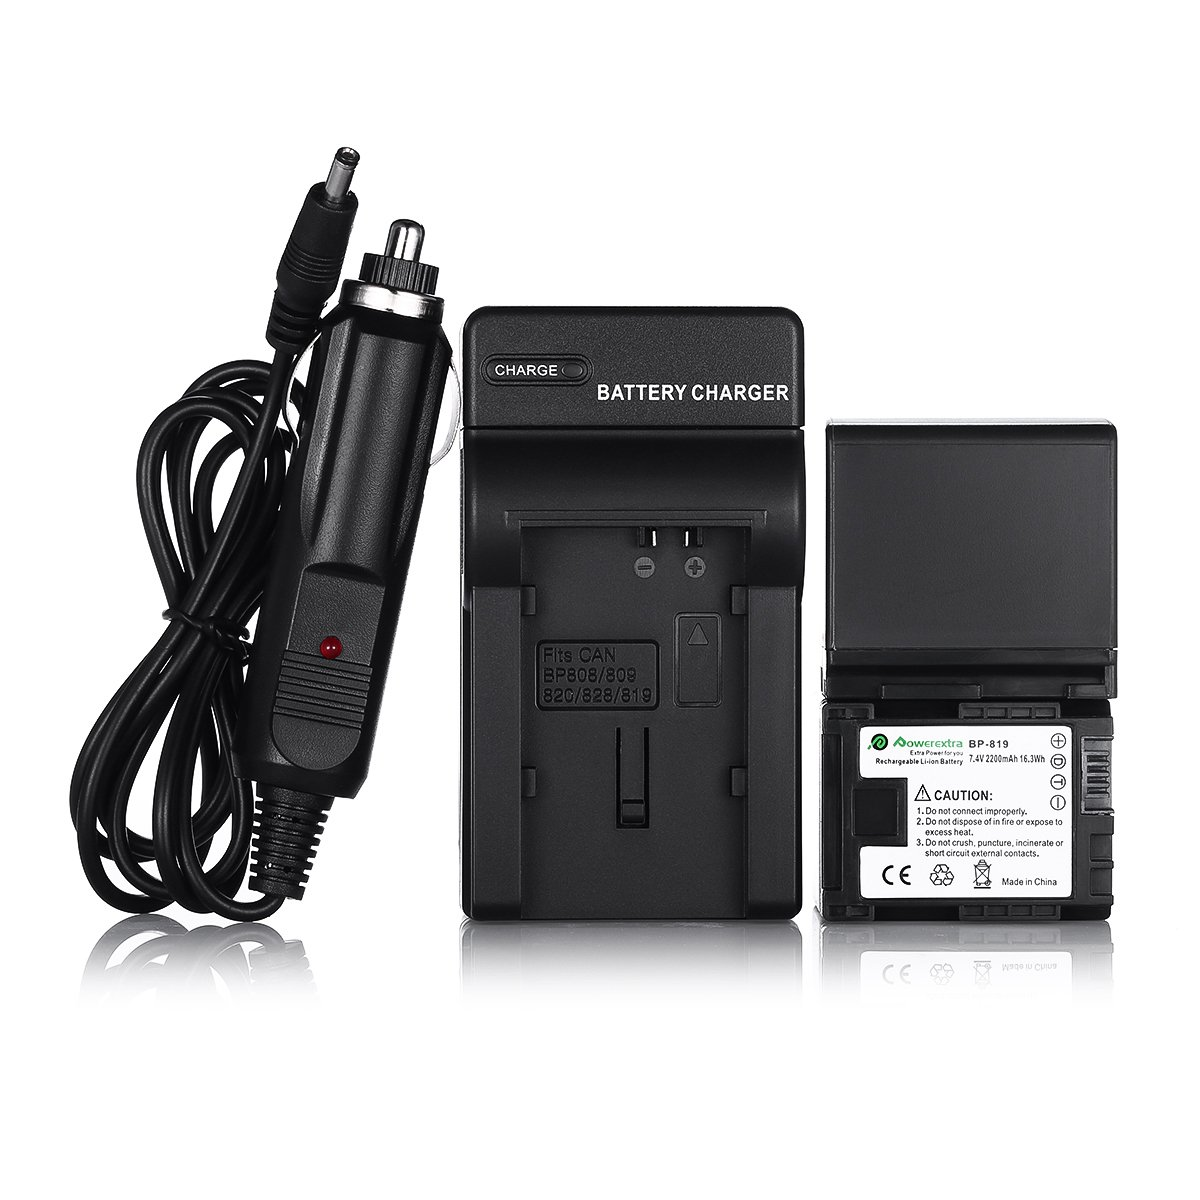 Powerextra 2 Pack Replacemet Canon BP-819 Battery and Charger for Canon VIXIA HF10, HF11, HF20, HF21, HF100, HF200, HF G10, HF M30, HF M31, HF M32, HF M40, HF M41, HF M300, HF M400